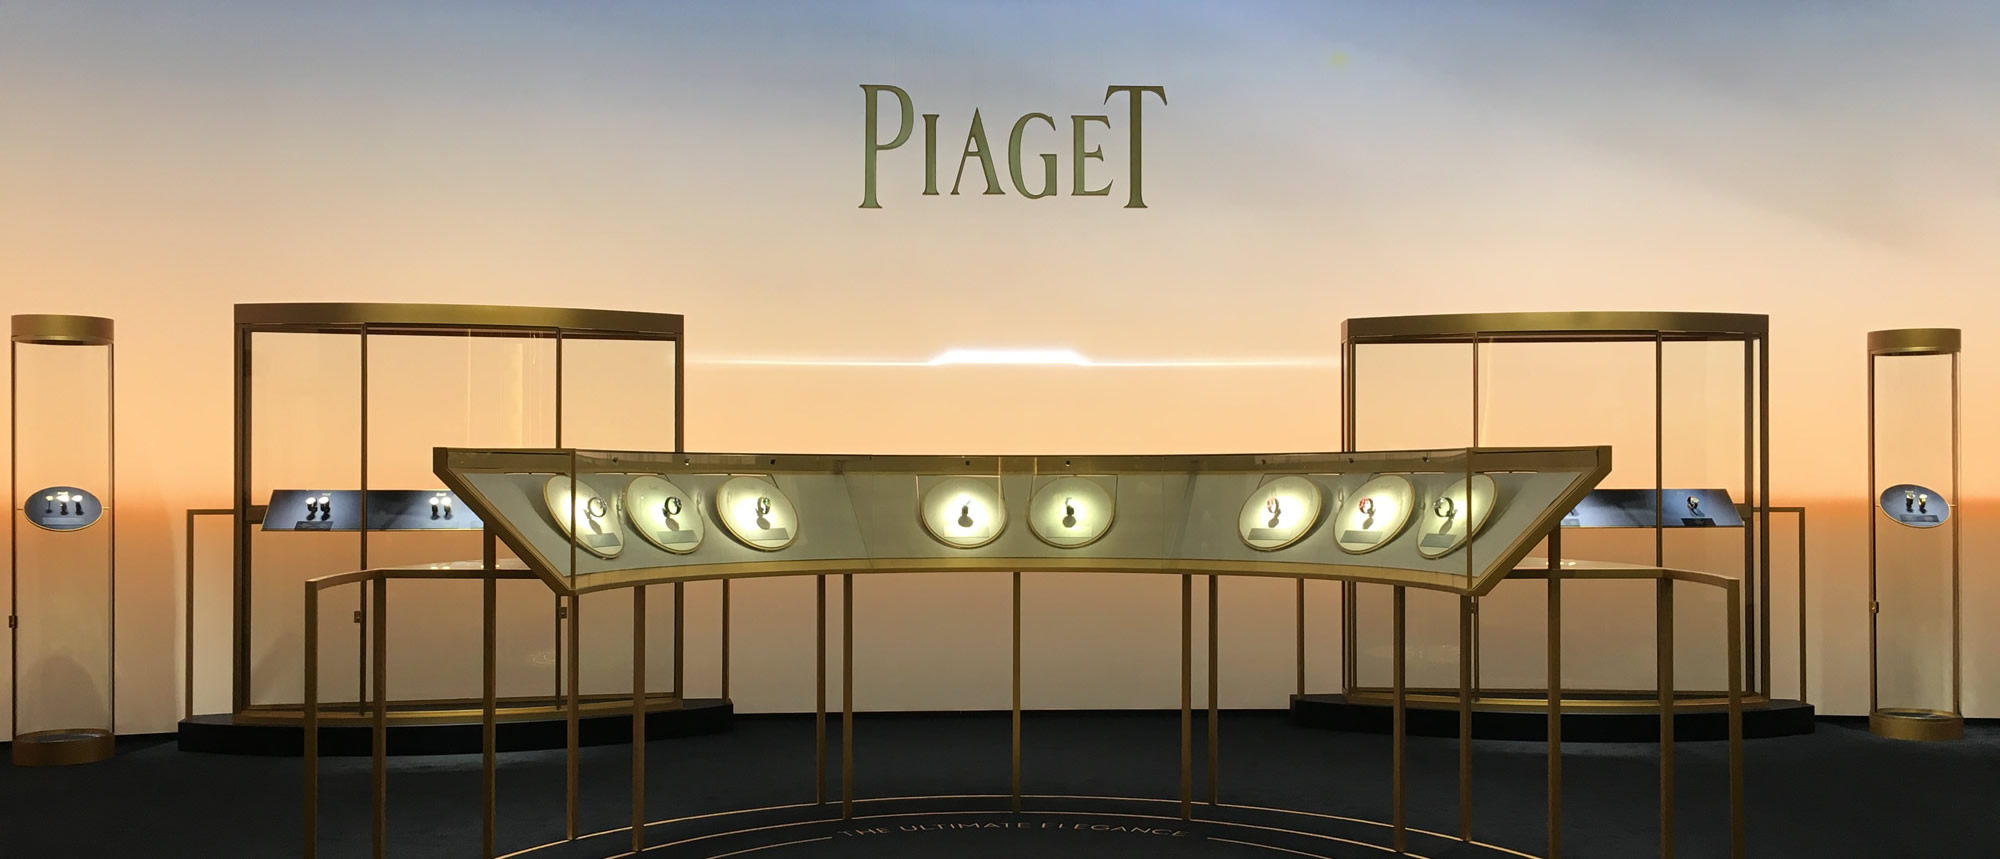 stand-piaget-sihh-2017